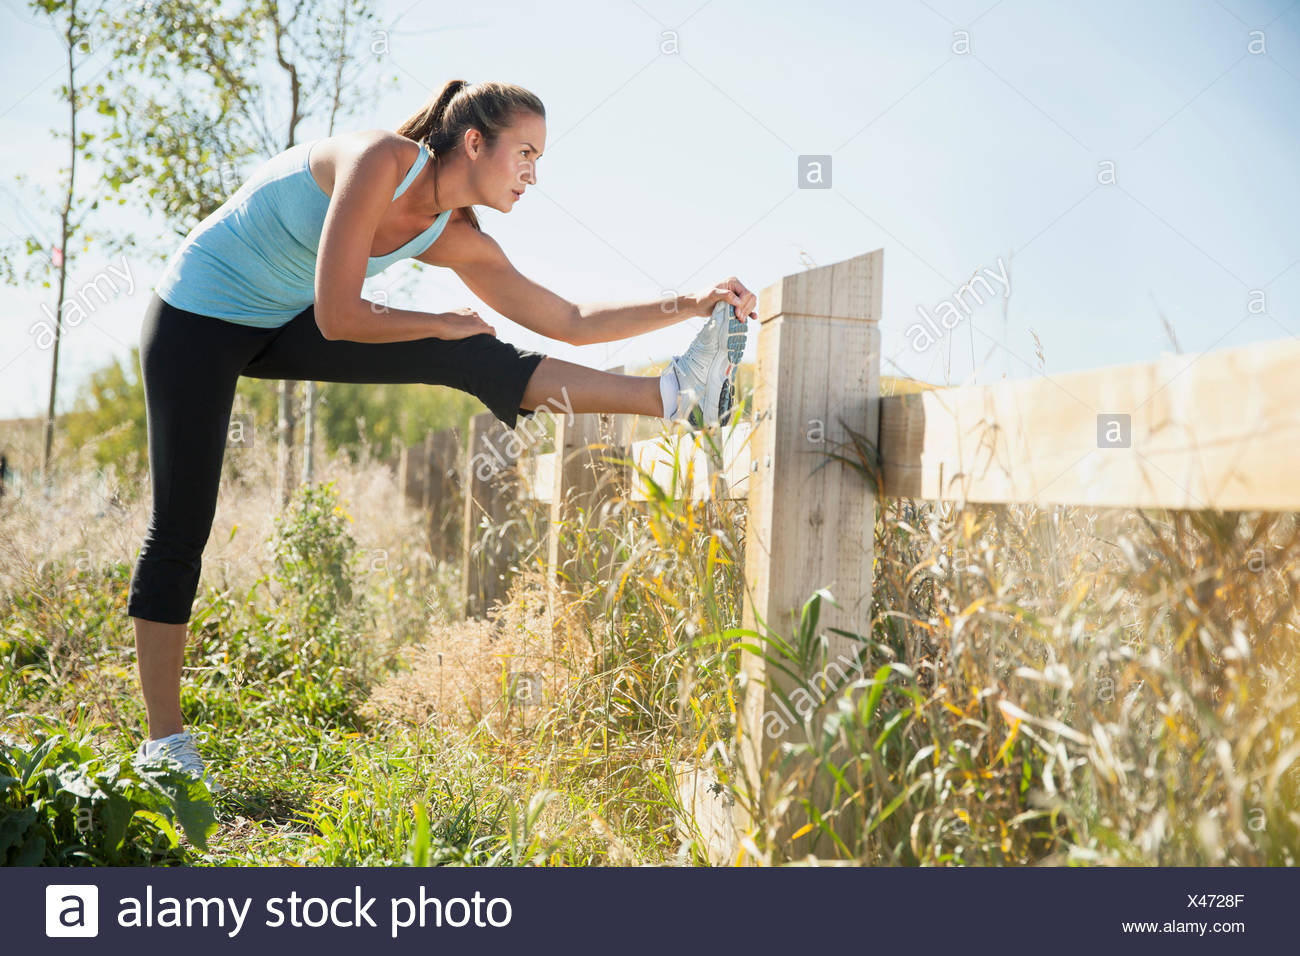 Woman stretching her leg before a run. - Stock Image